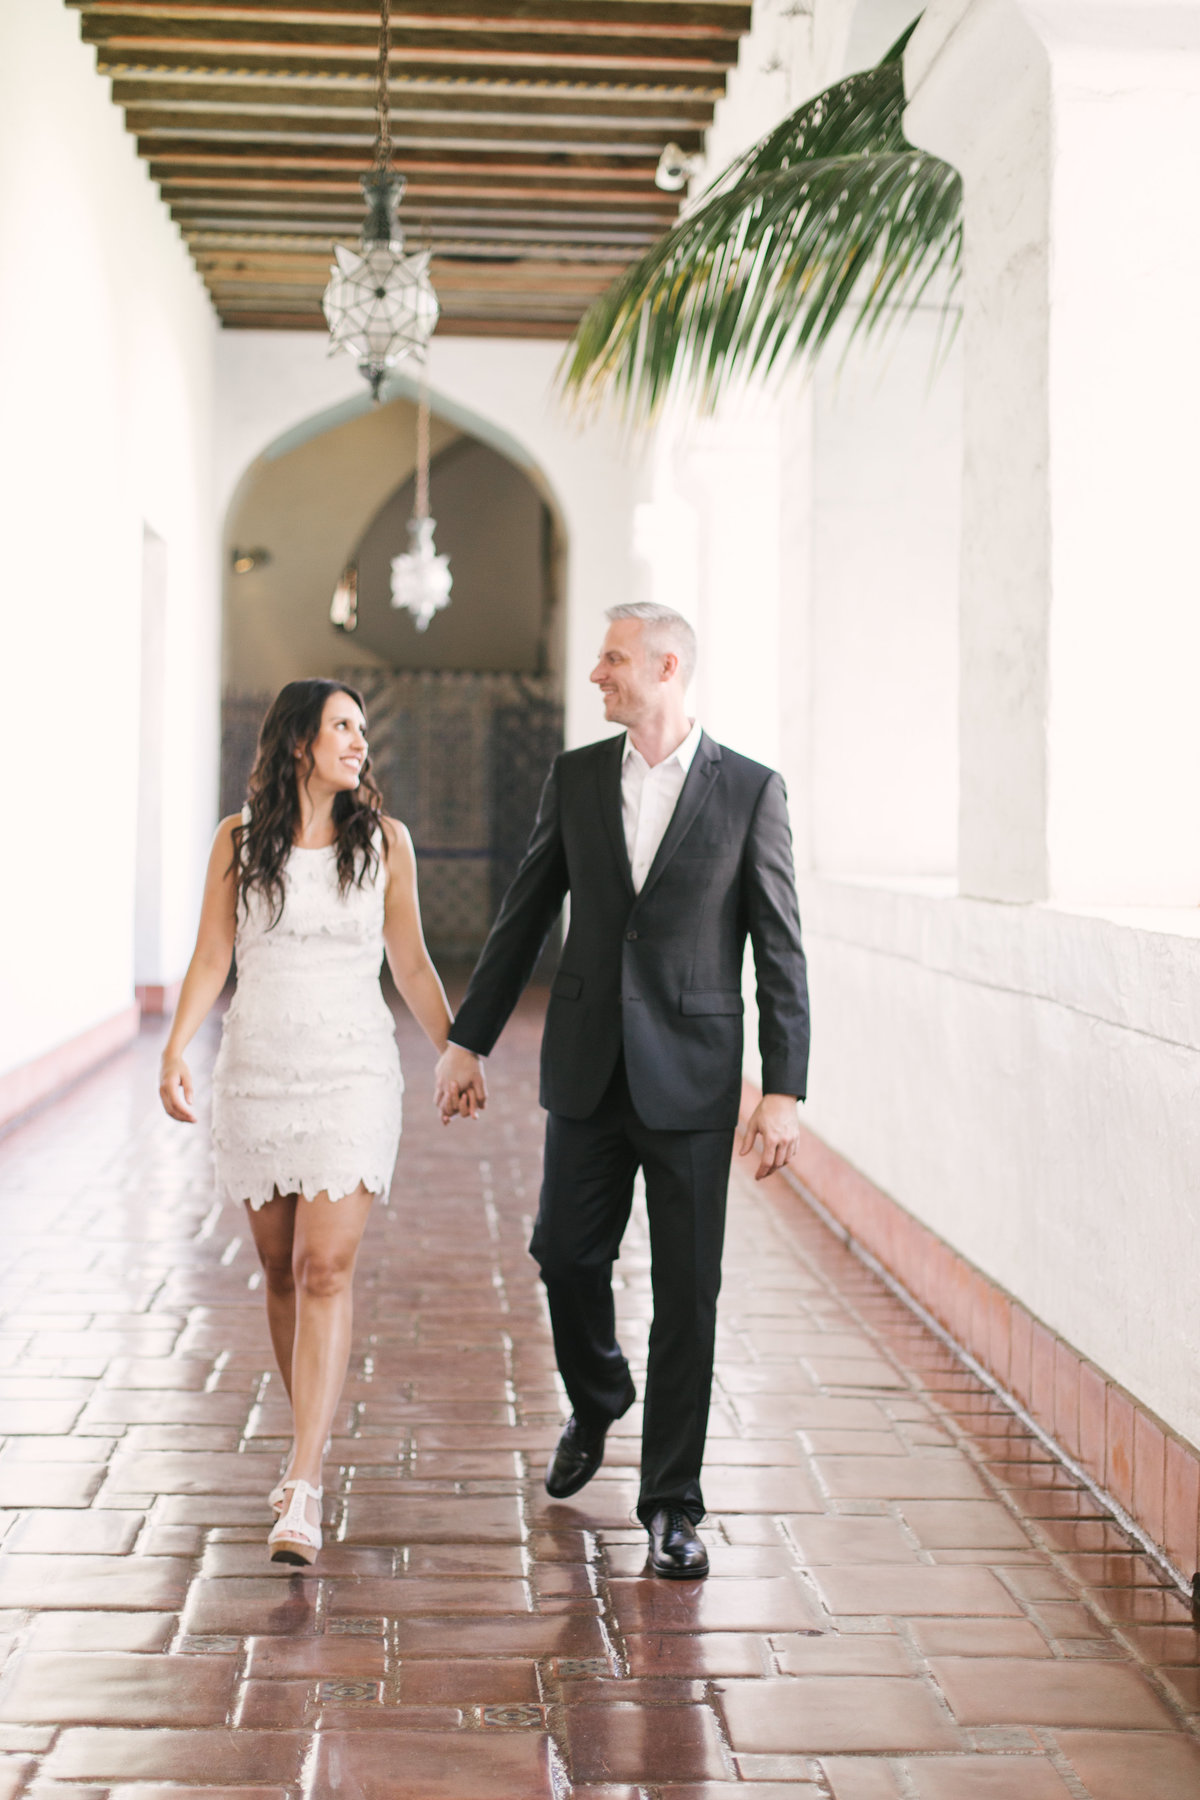 Jada_Ryan- Santa Barbara Courthouse Wedding-3